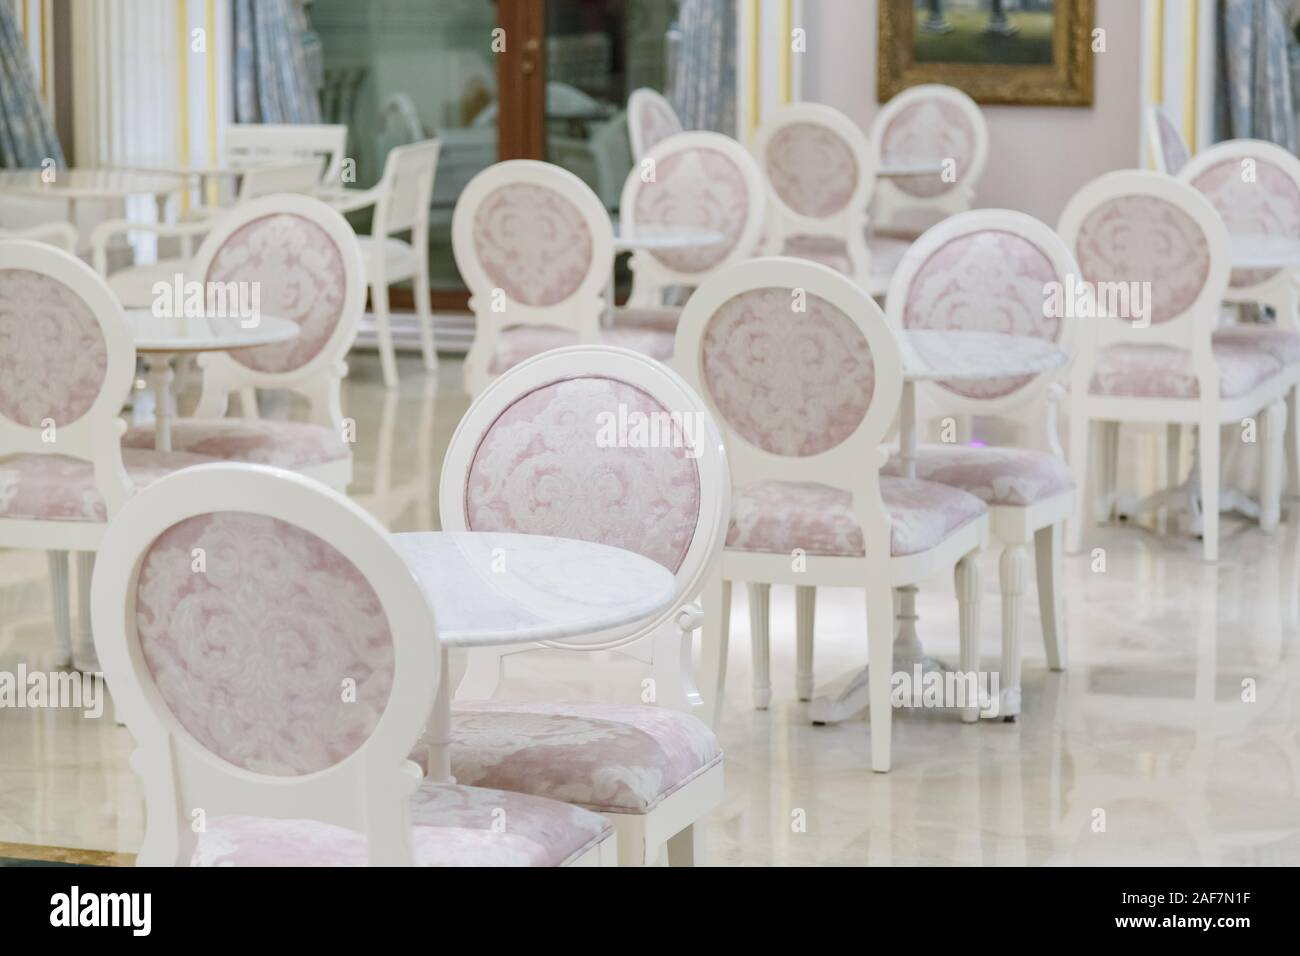 Round White Marble Tables And Chairs In Cafe Stock Photo Alamy